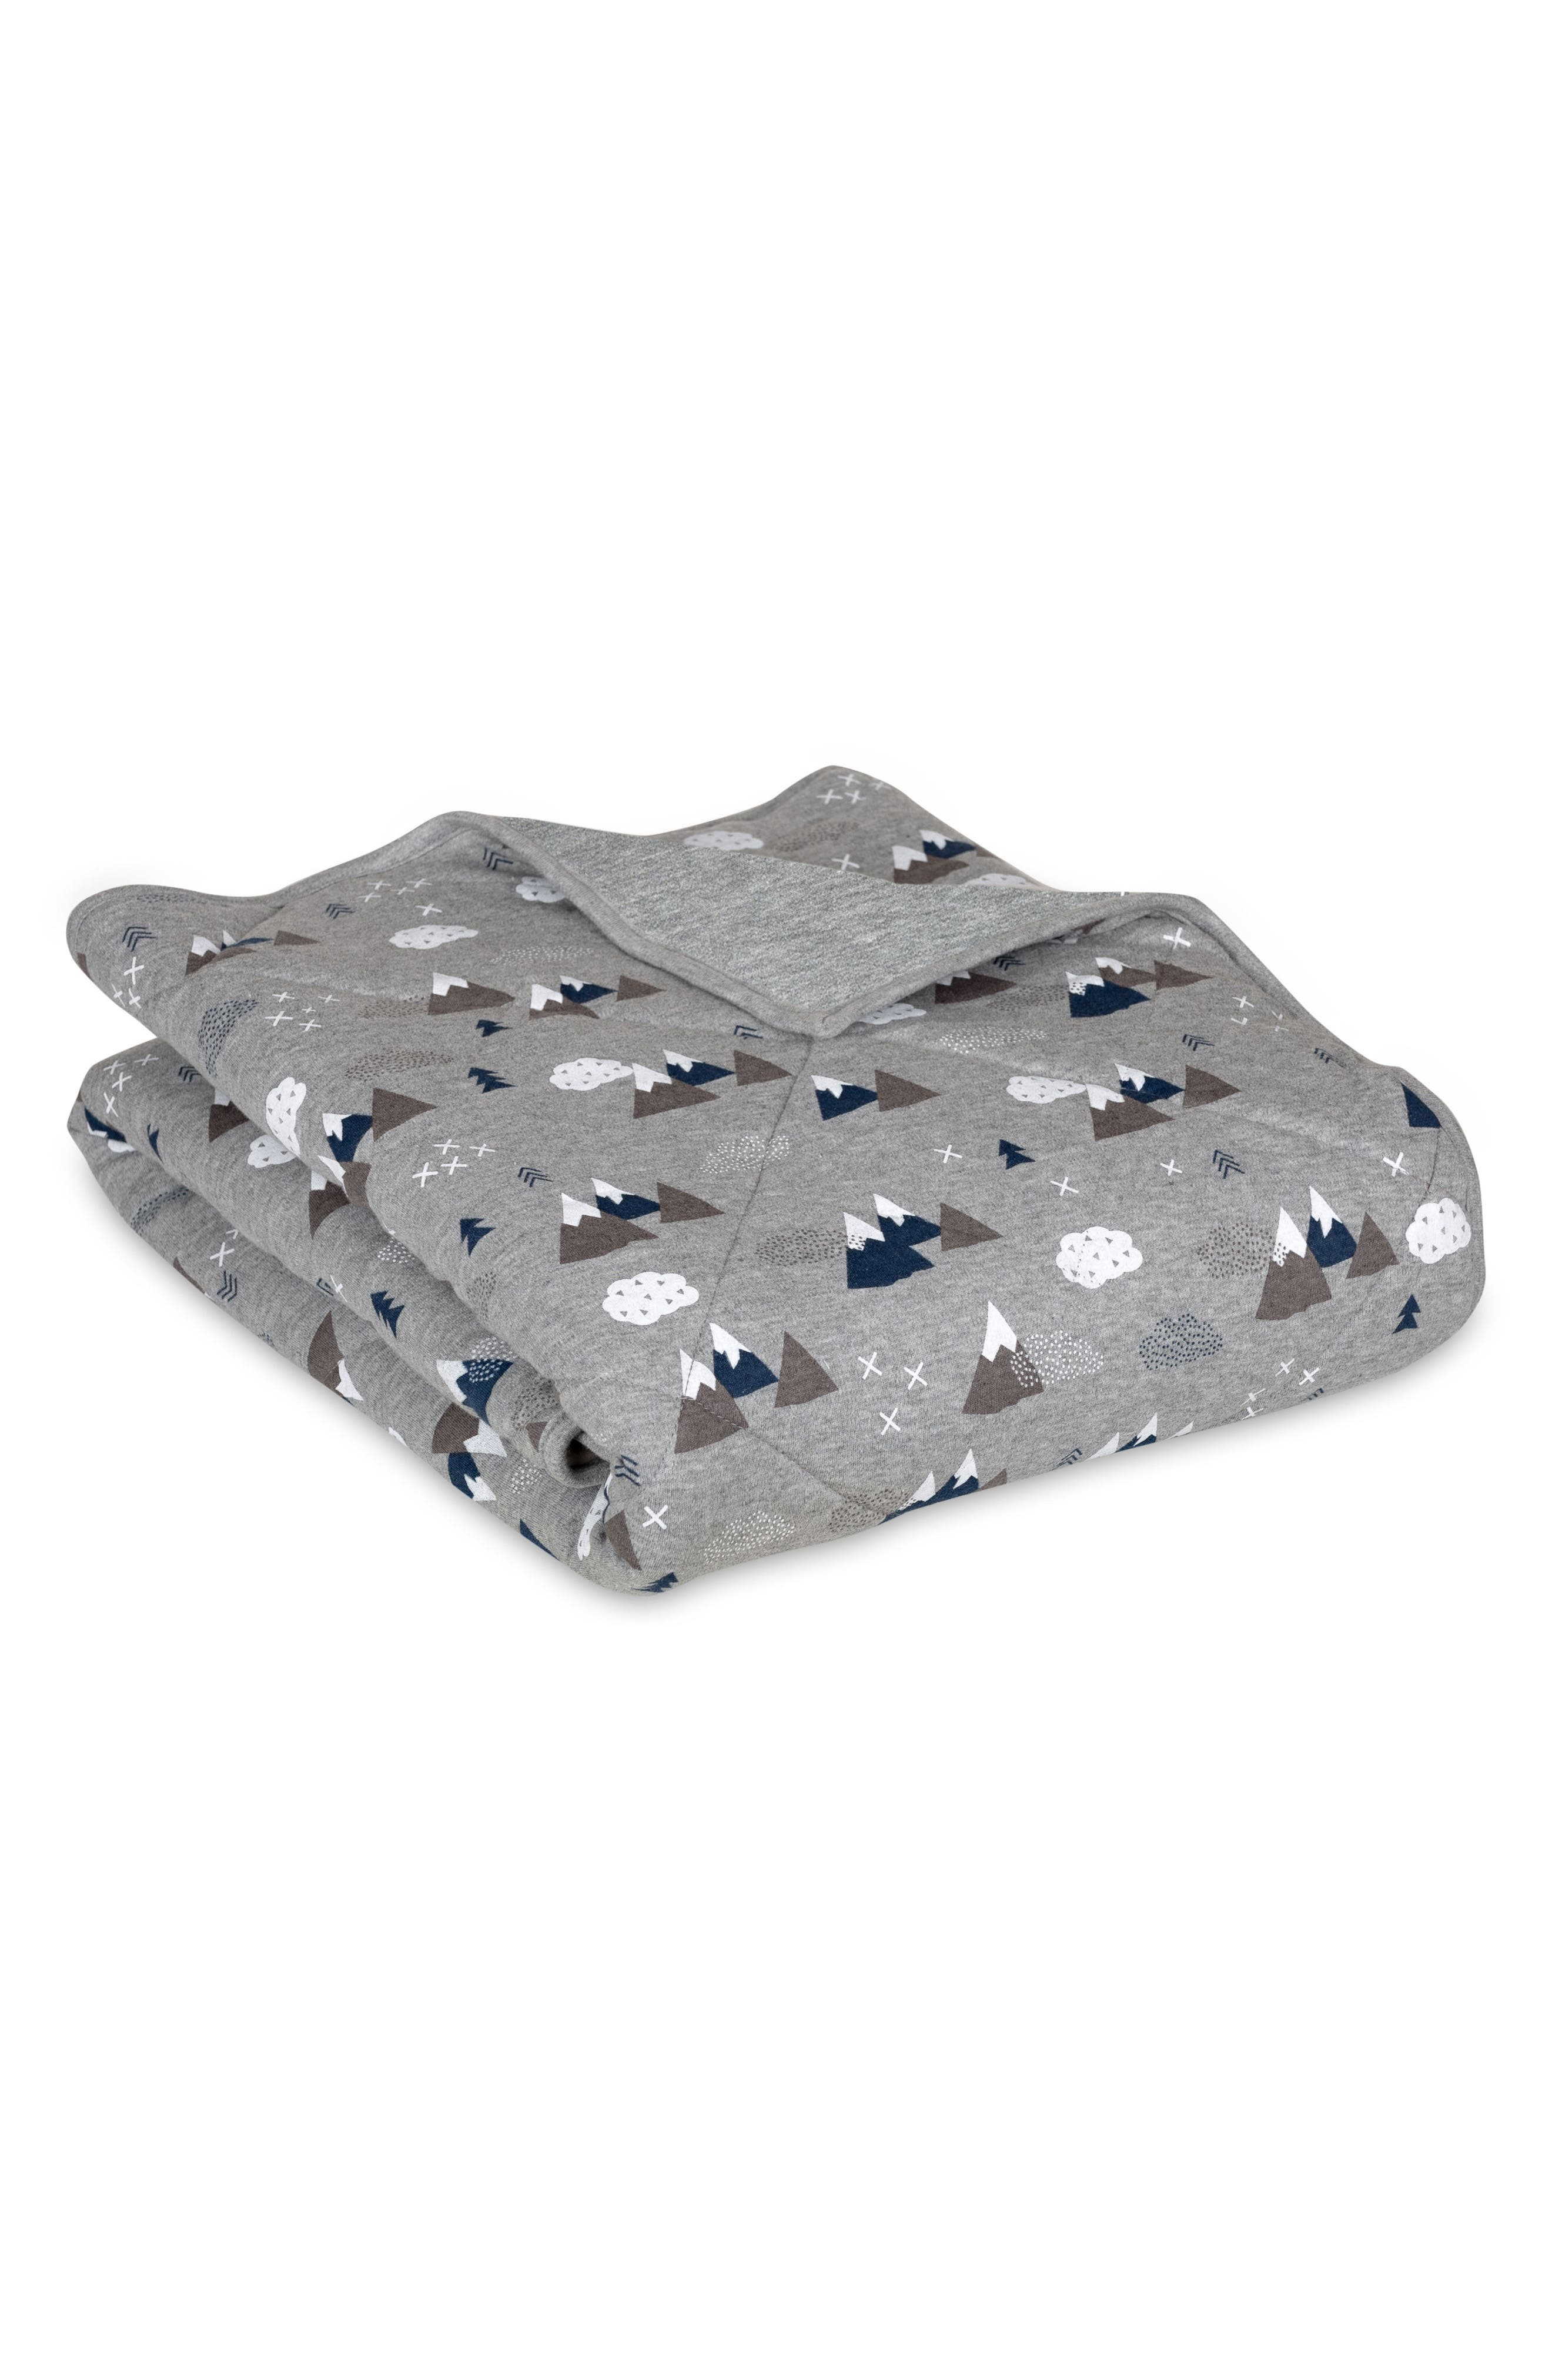 Peaks Quilted Comforter,                             Main thumbnail 1, color,                             020